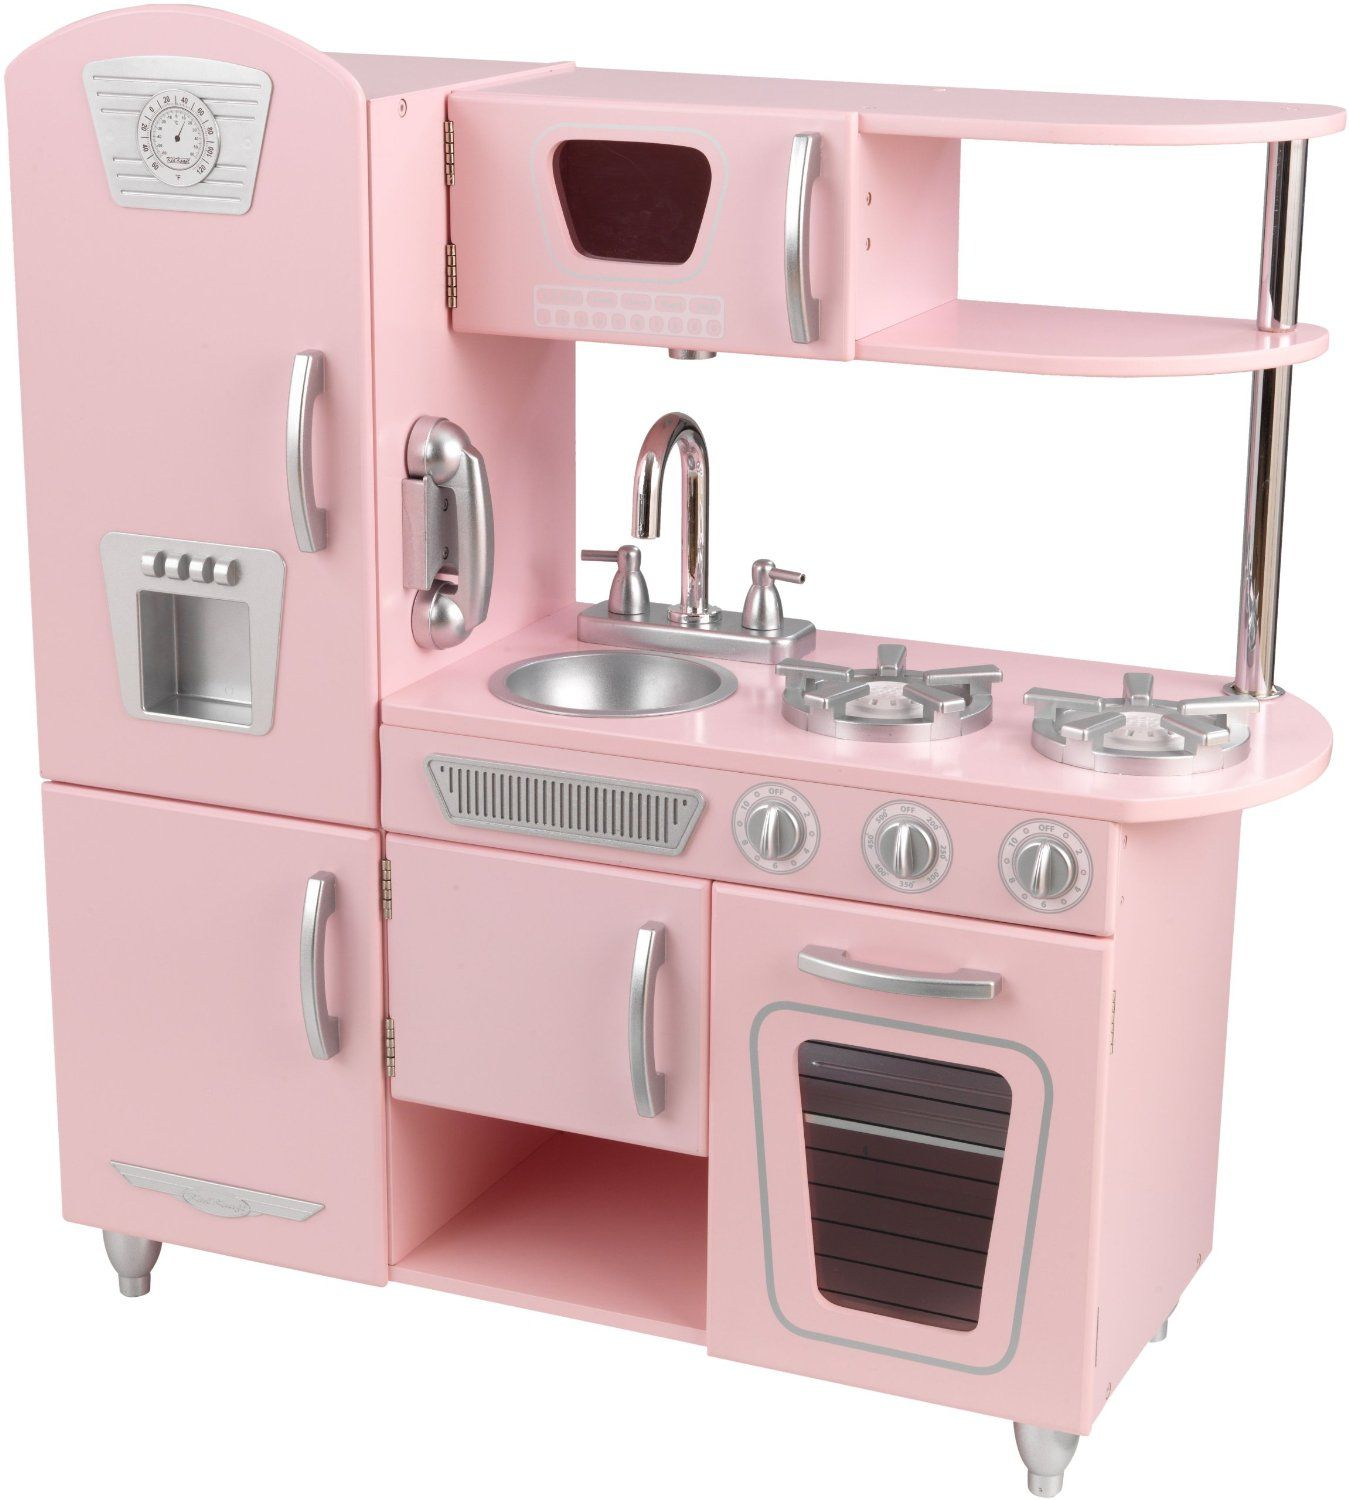 Kidkraft Vintage Kitchen In Pink Toys